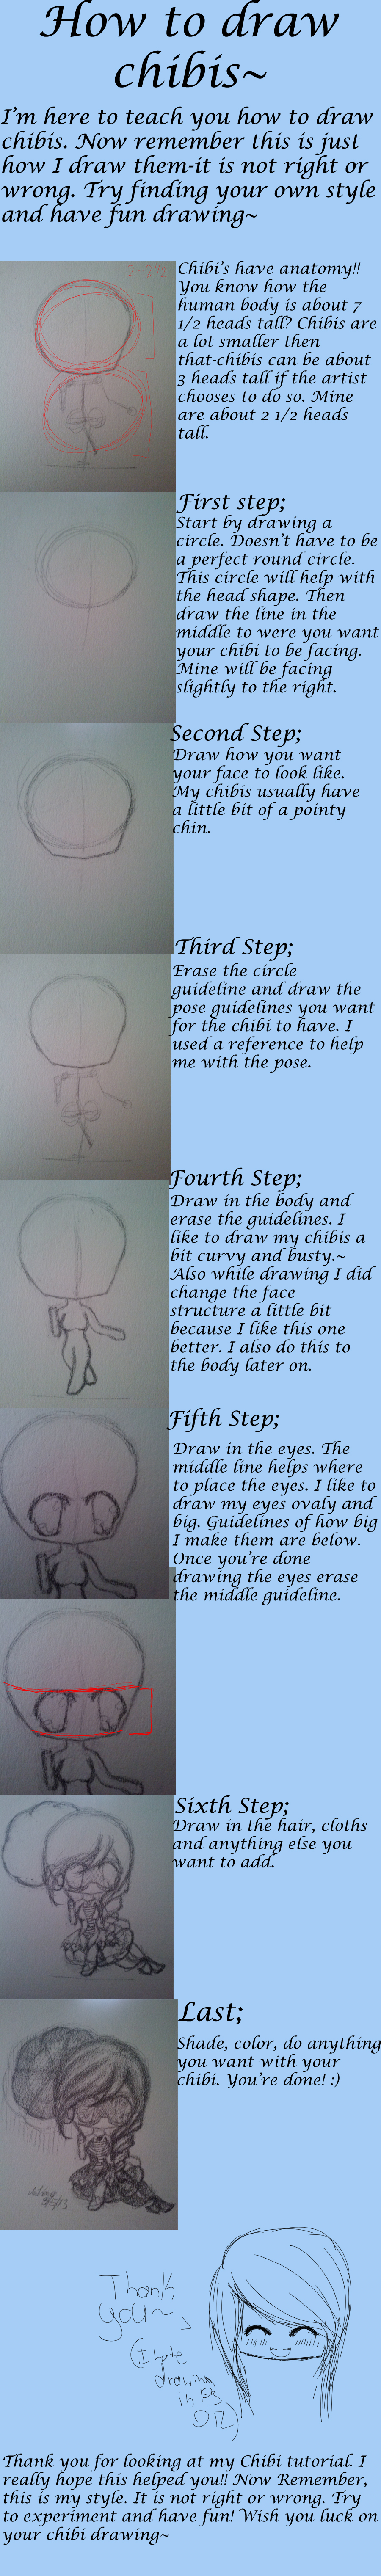 How To Draw Chibi's by xXNightRose14Xx